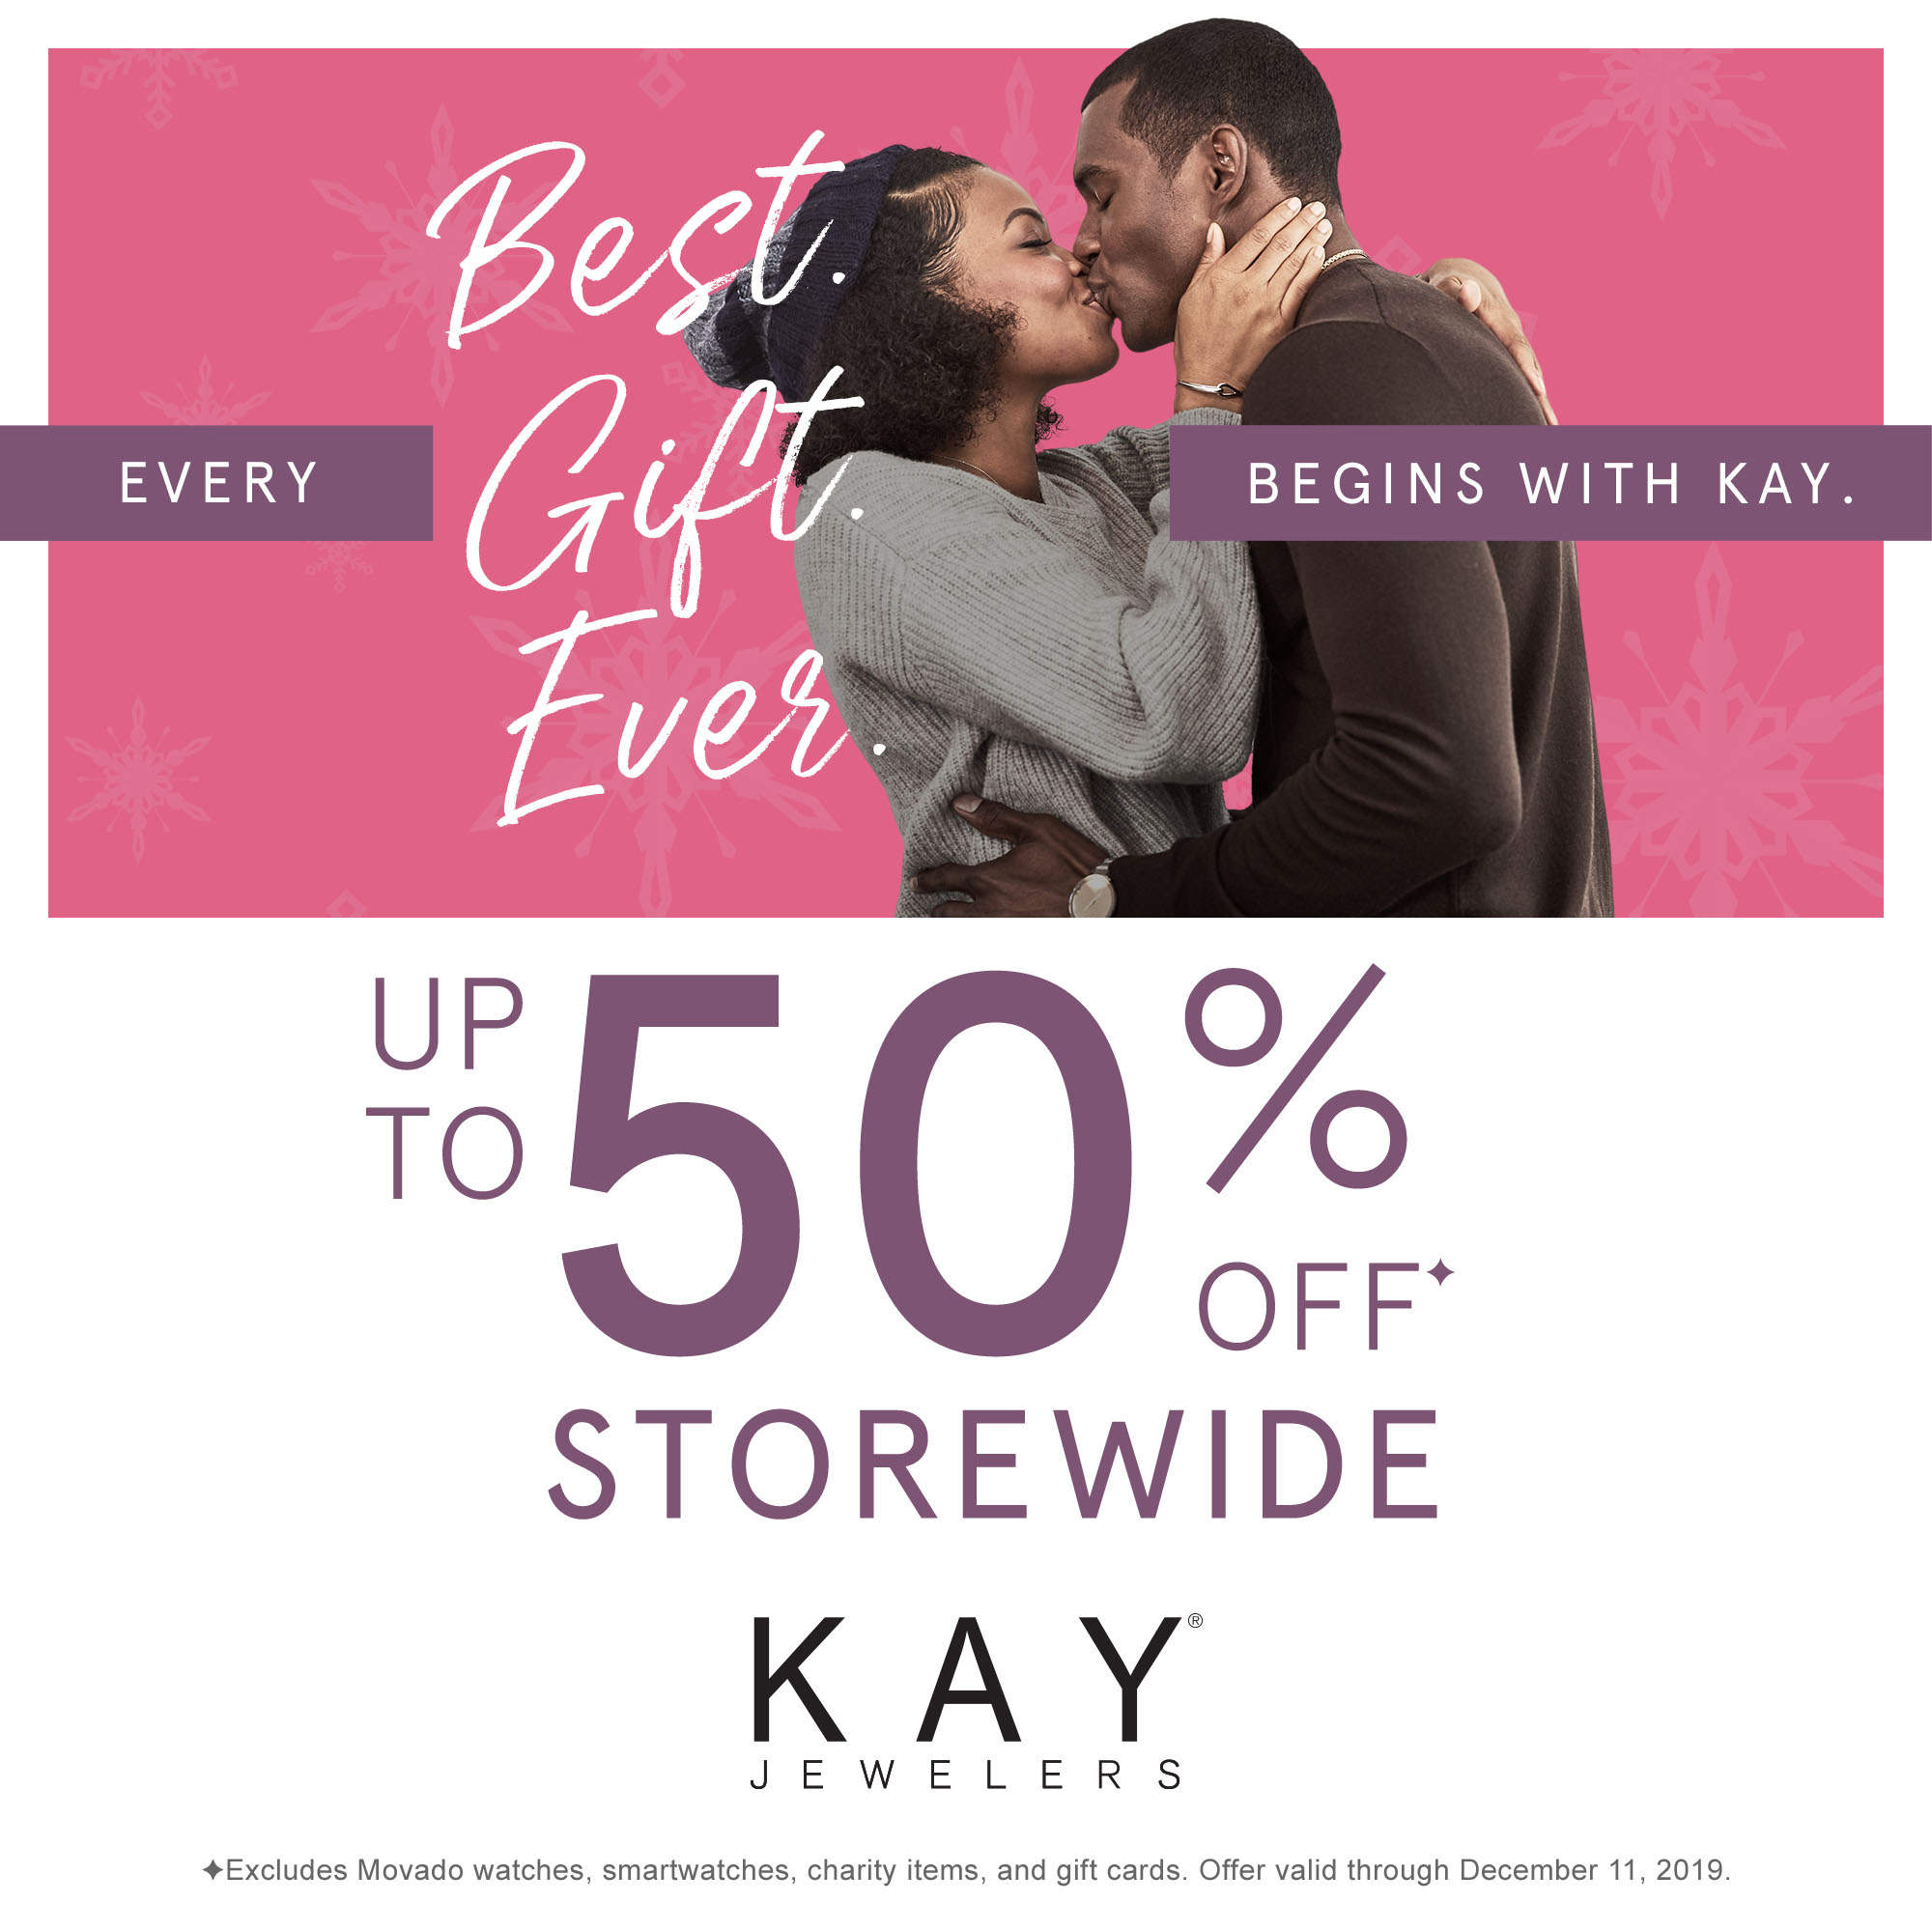 Up to 50% Off Storewide! from Kay Jewelers